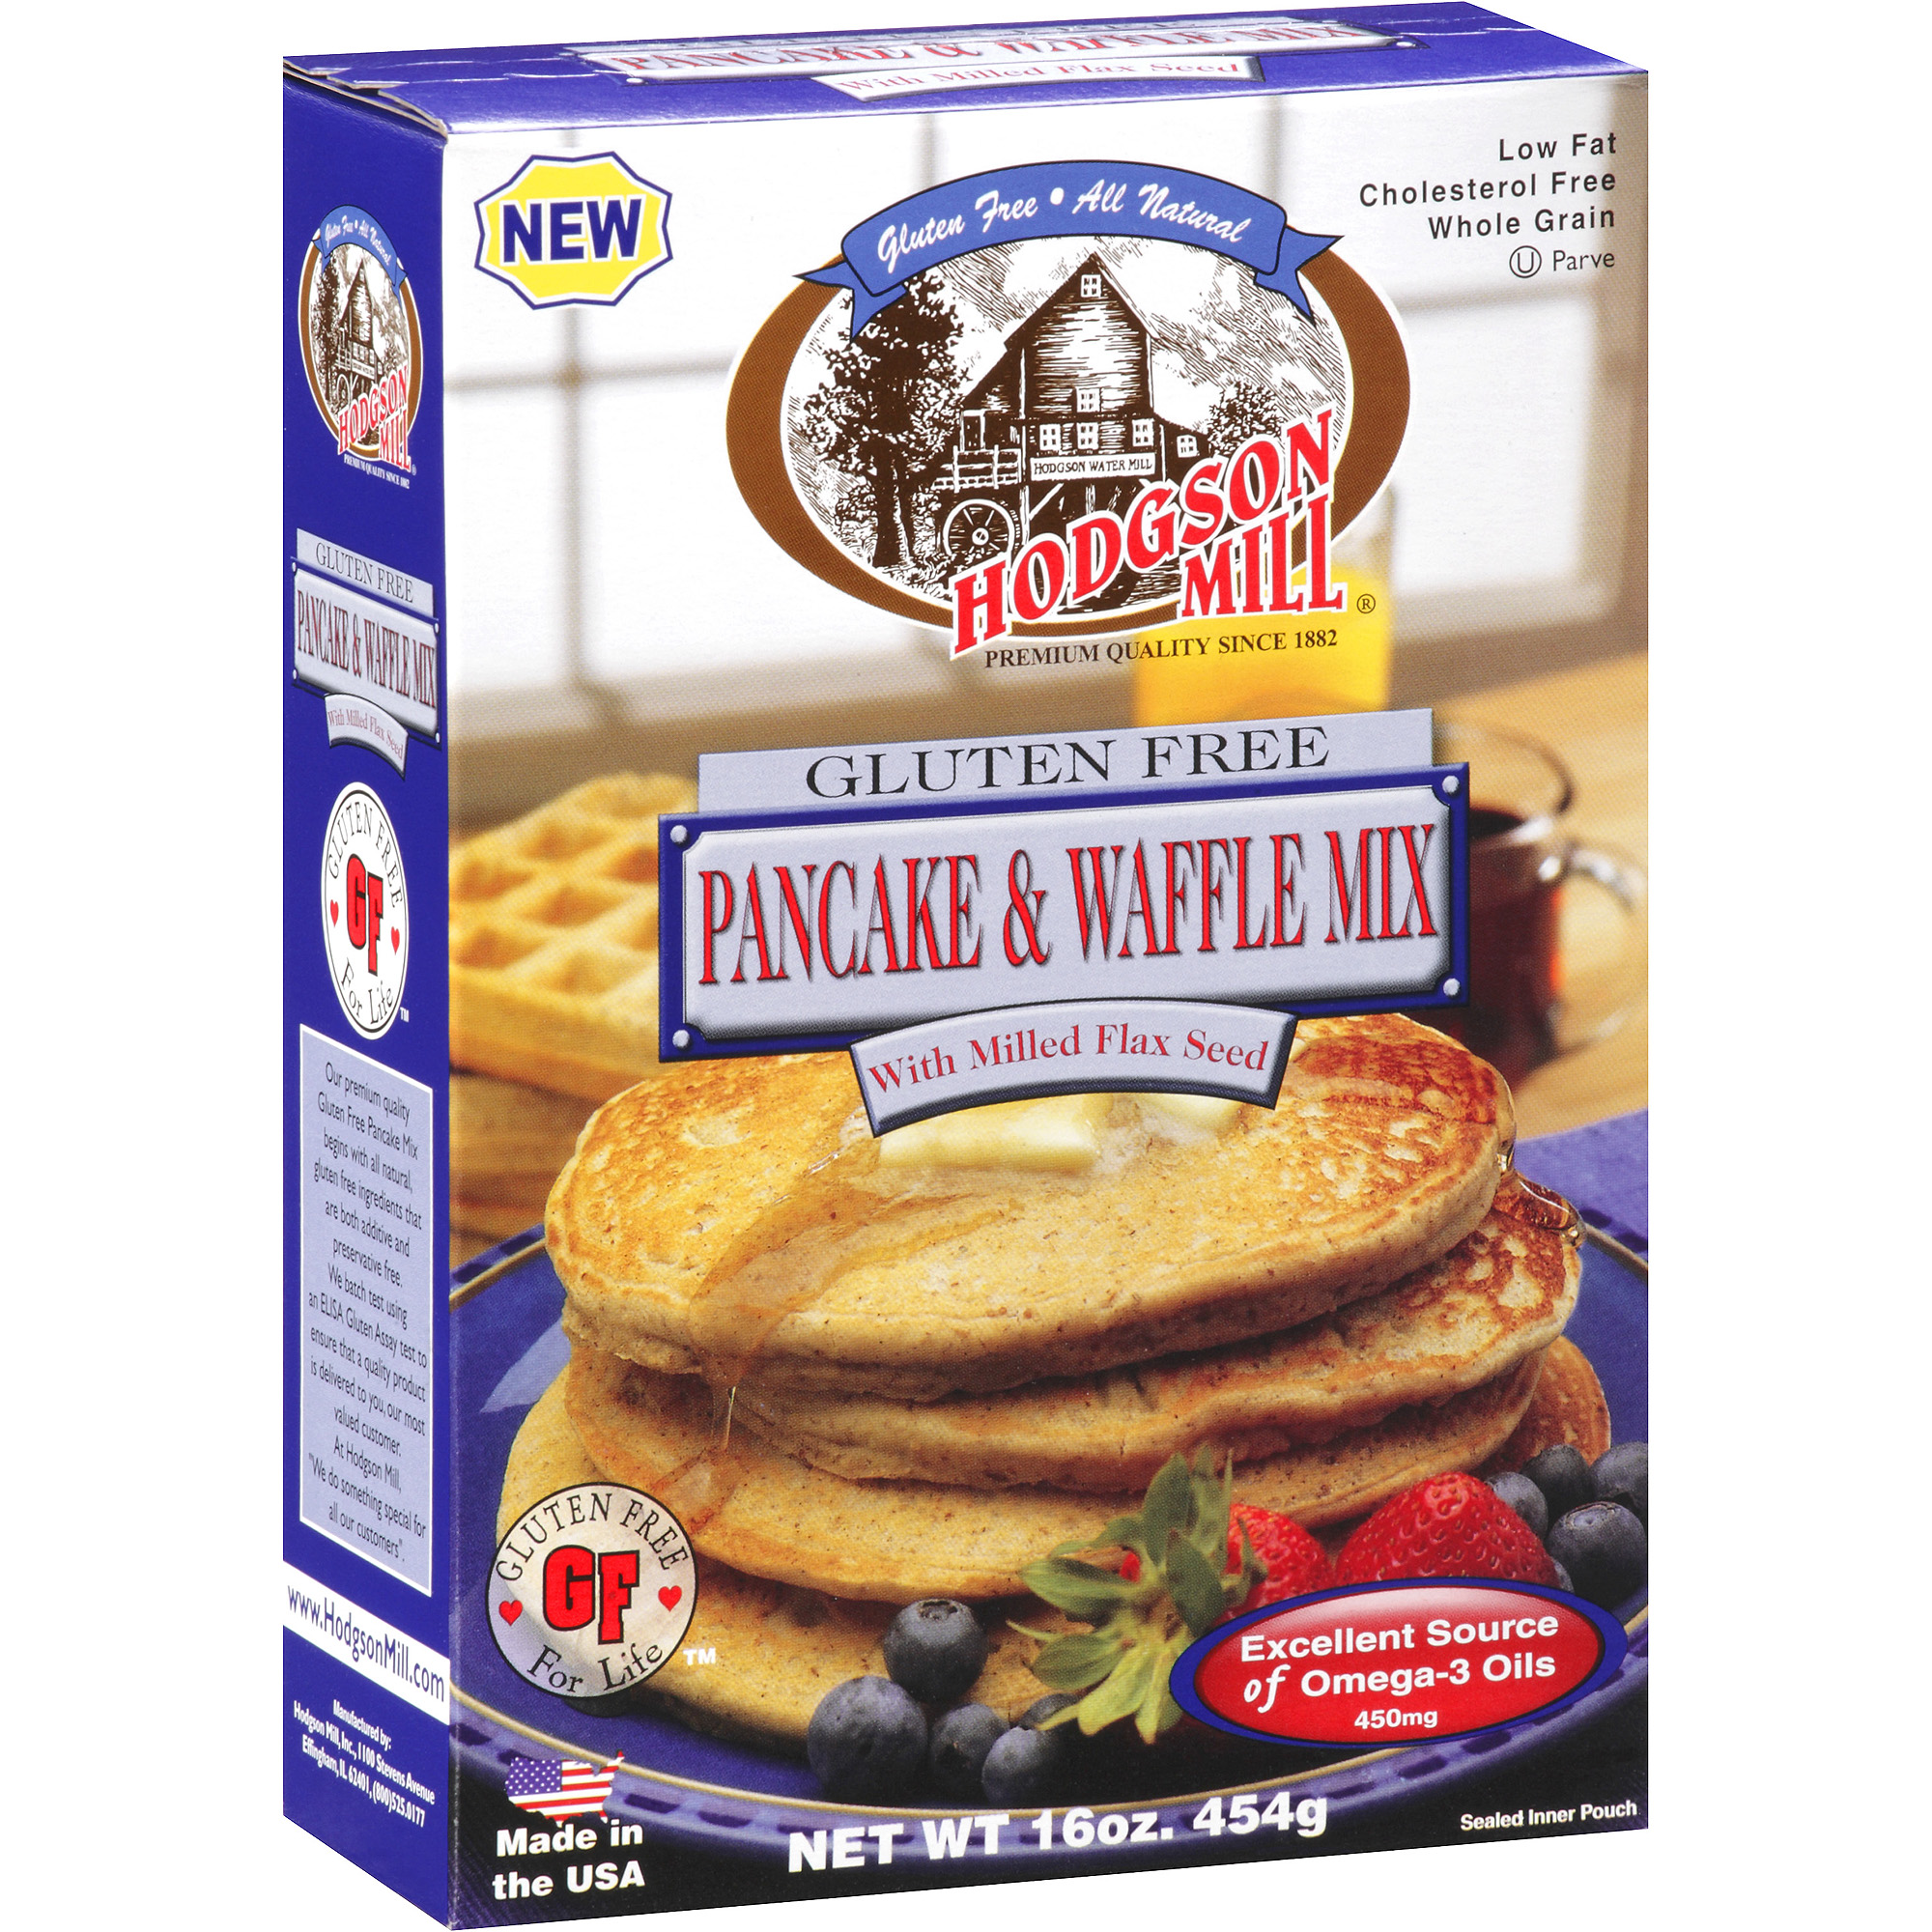 Hodgson Mill Gluten Free Pancake & Waffle Mix with Milled Flax Seed, 16 oz by Hodgson Mill Inc.